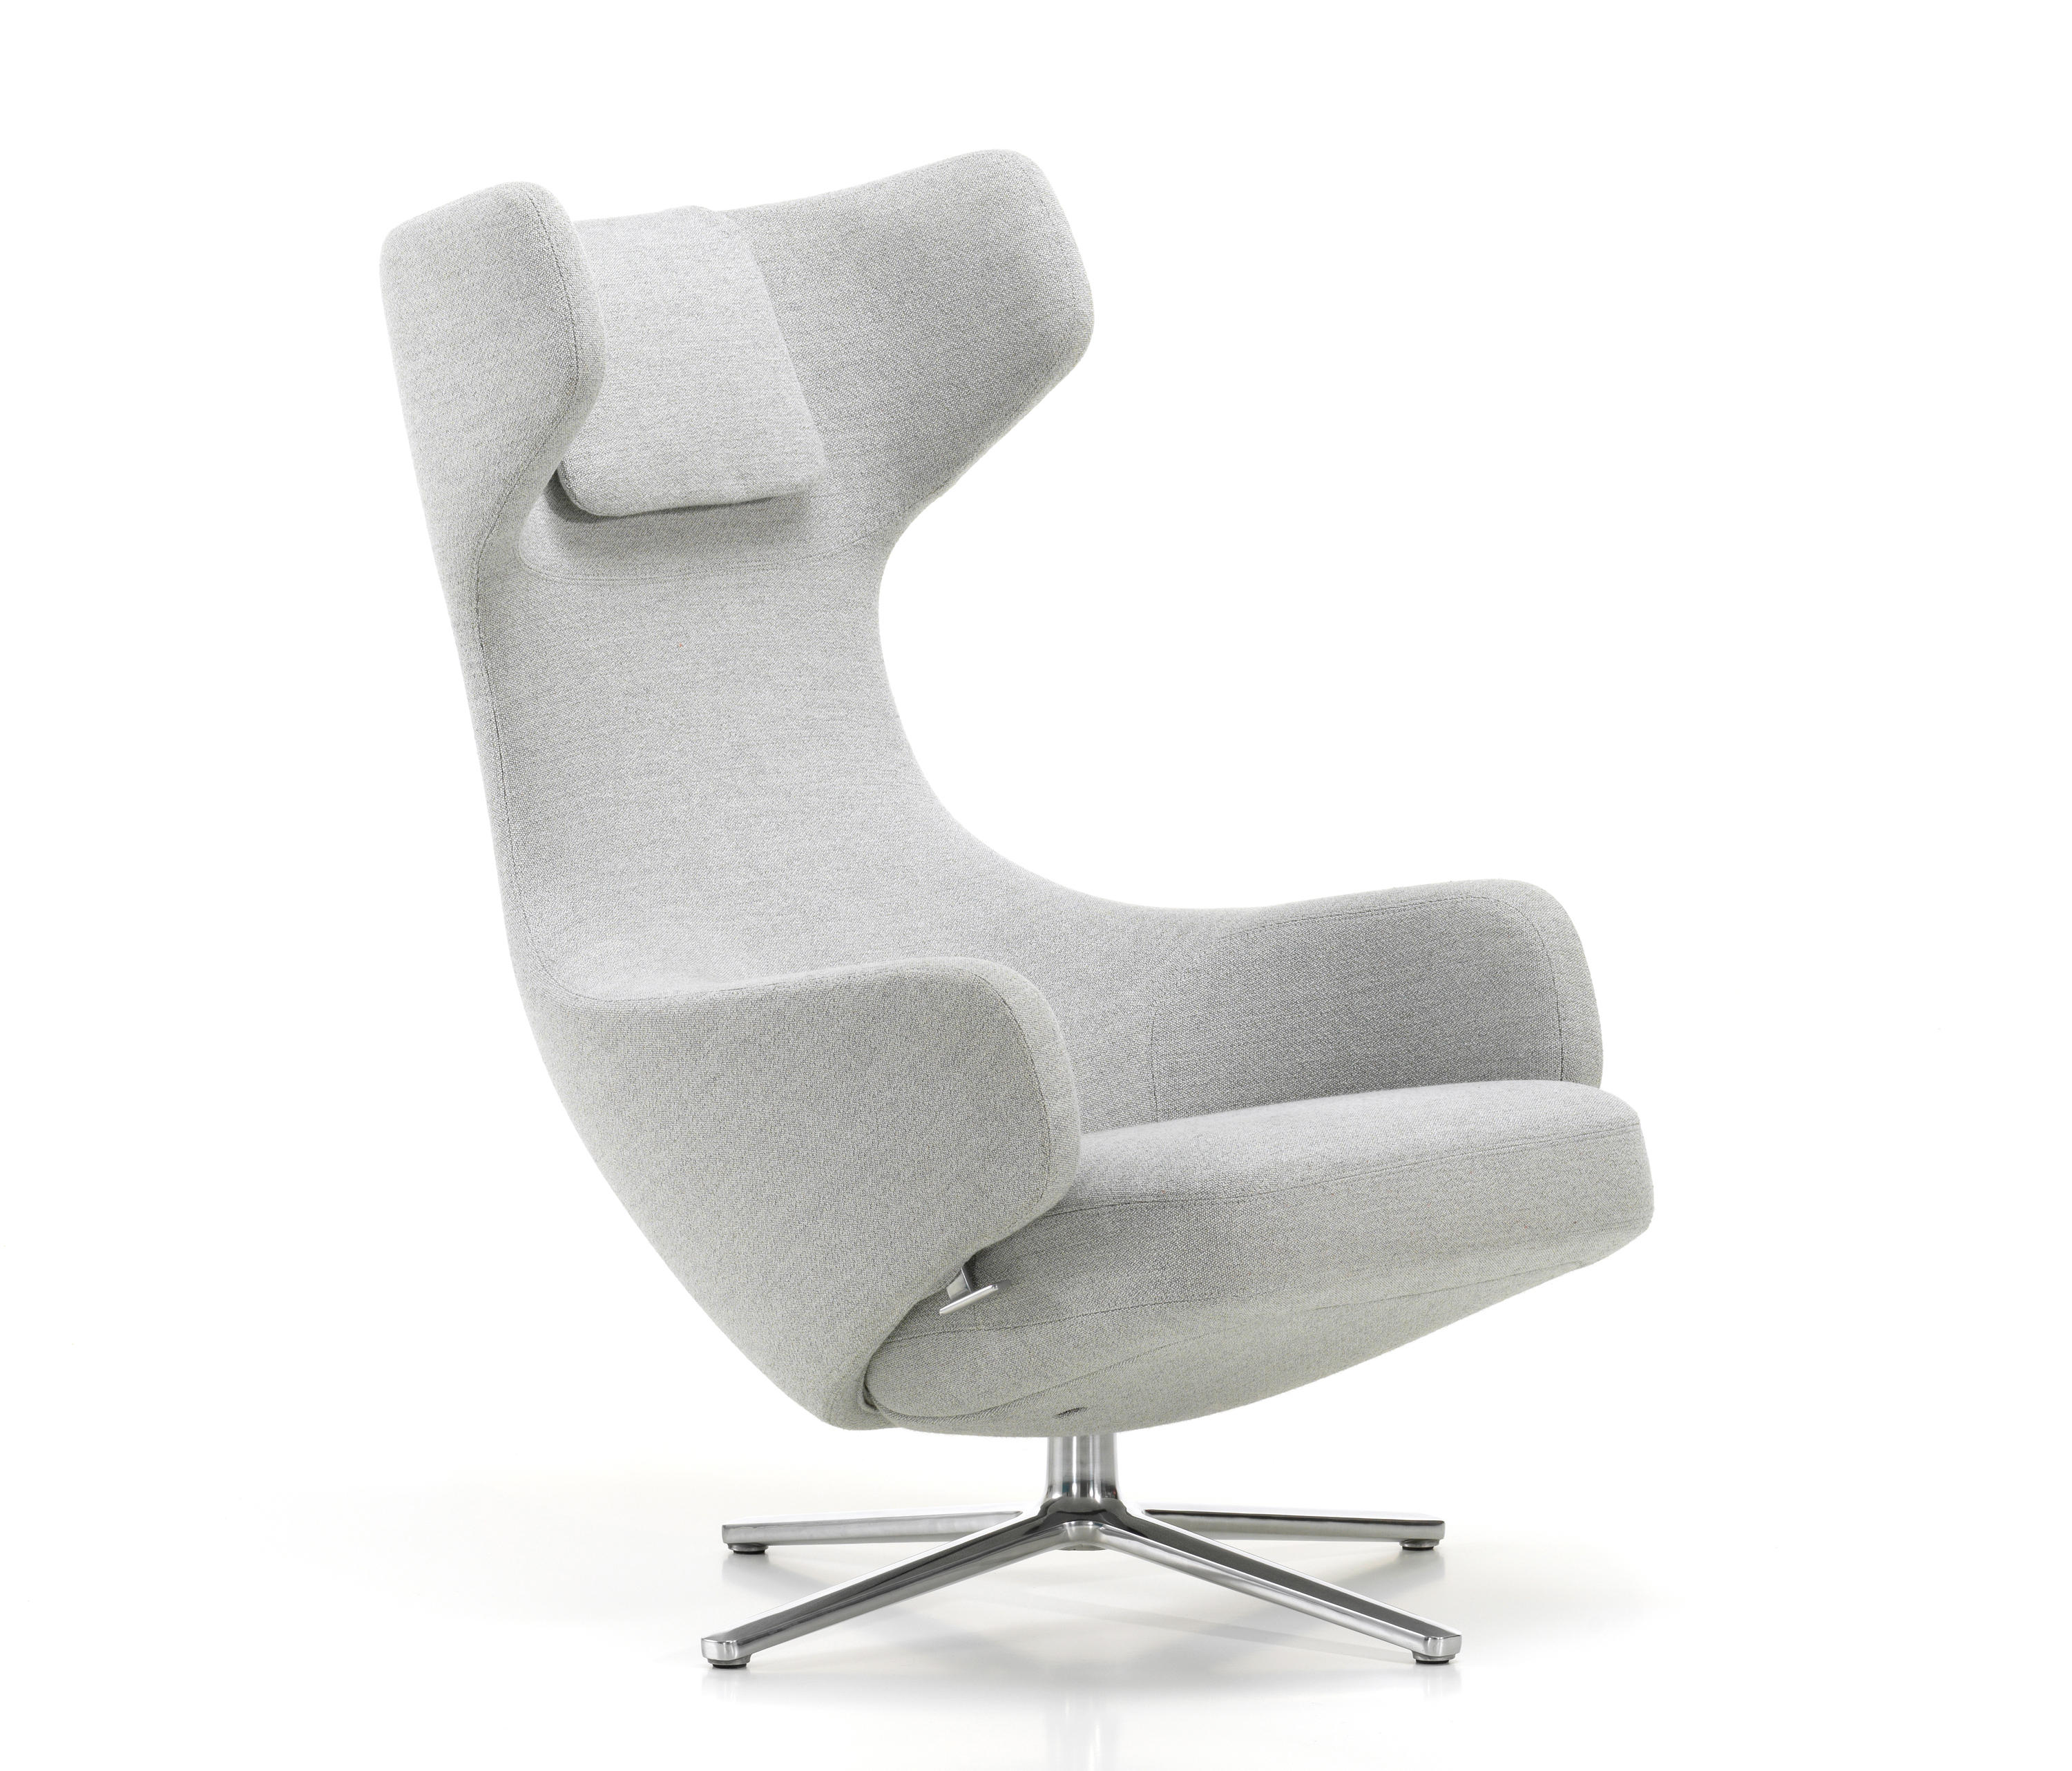 Grand Repos Sessel Grand Repos Sessel Von Vitra Architonic